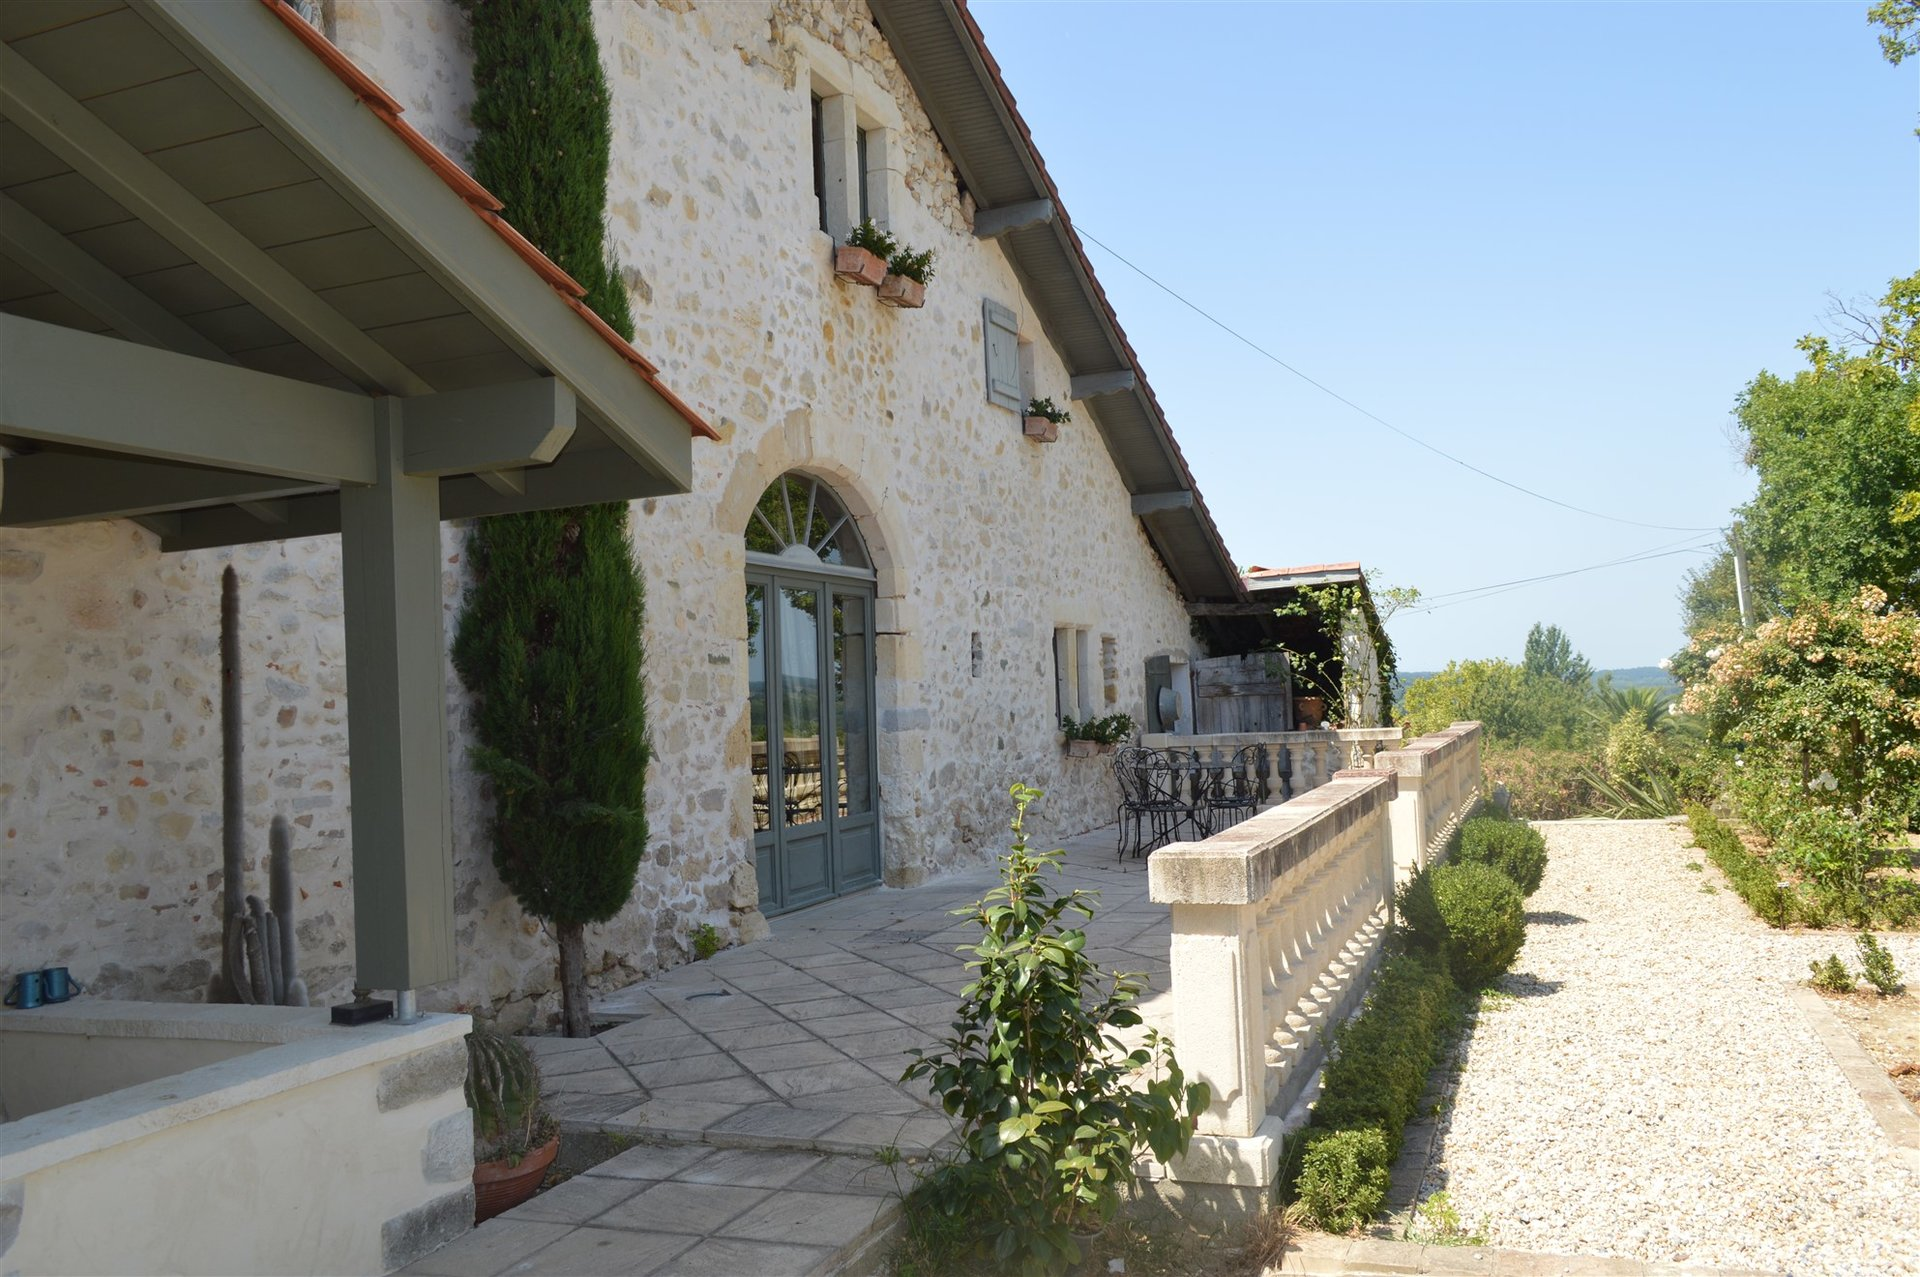 17th C Renovated Farmhouse with 2 Guesthouses and 4000m2 Garden, 20 Minutes from Bayonne